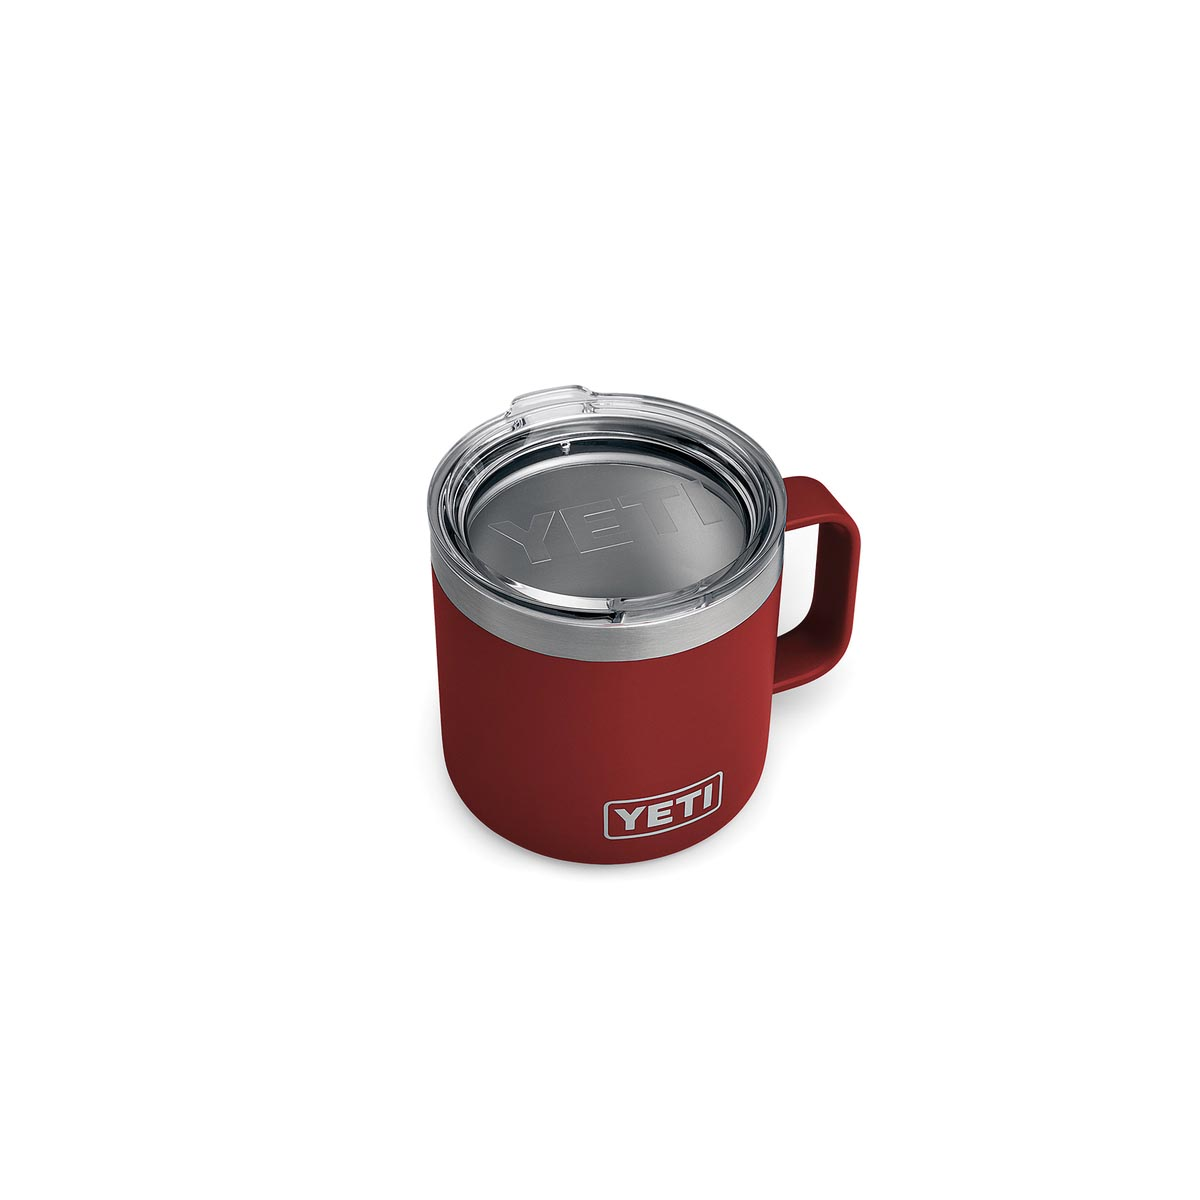 Picture of YETI Rambler 21071500187 Mug, 14 oz Capacity, Stainless Steel, Charcoal, Insulated